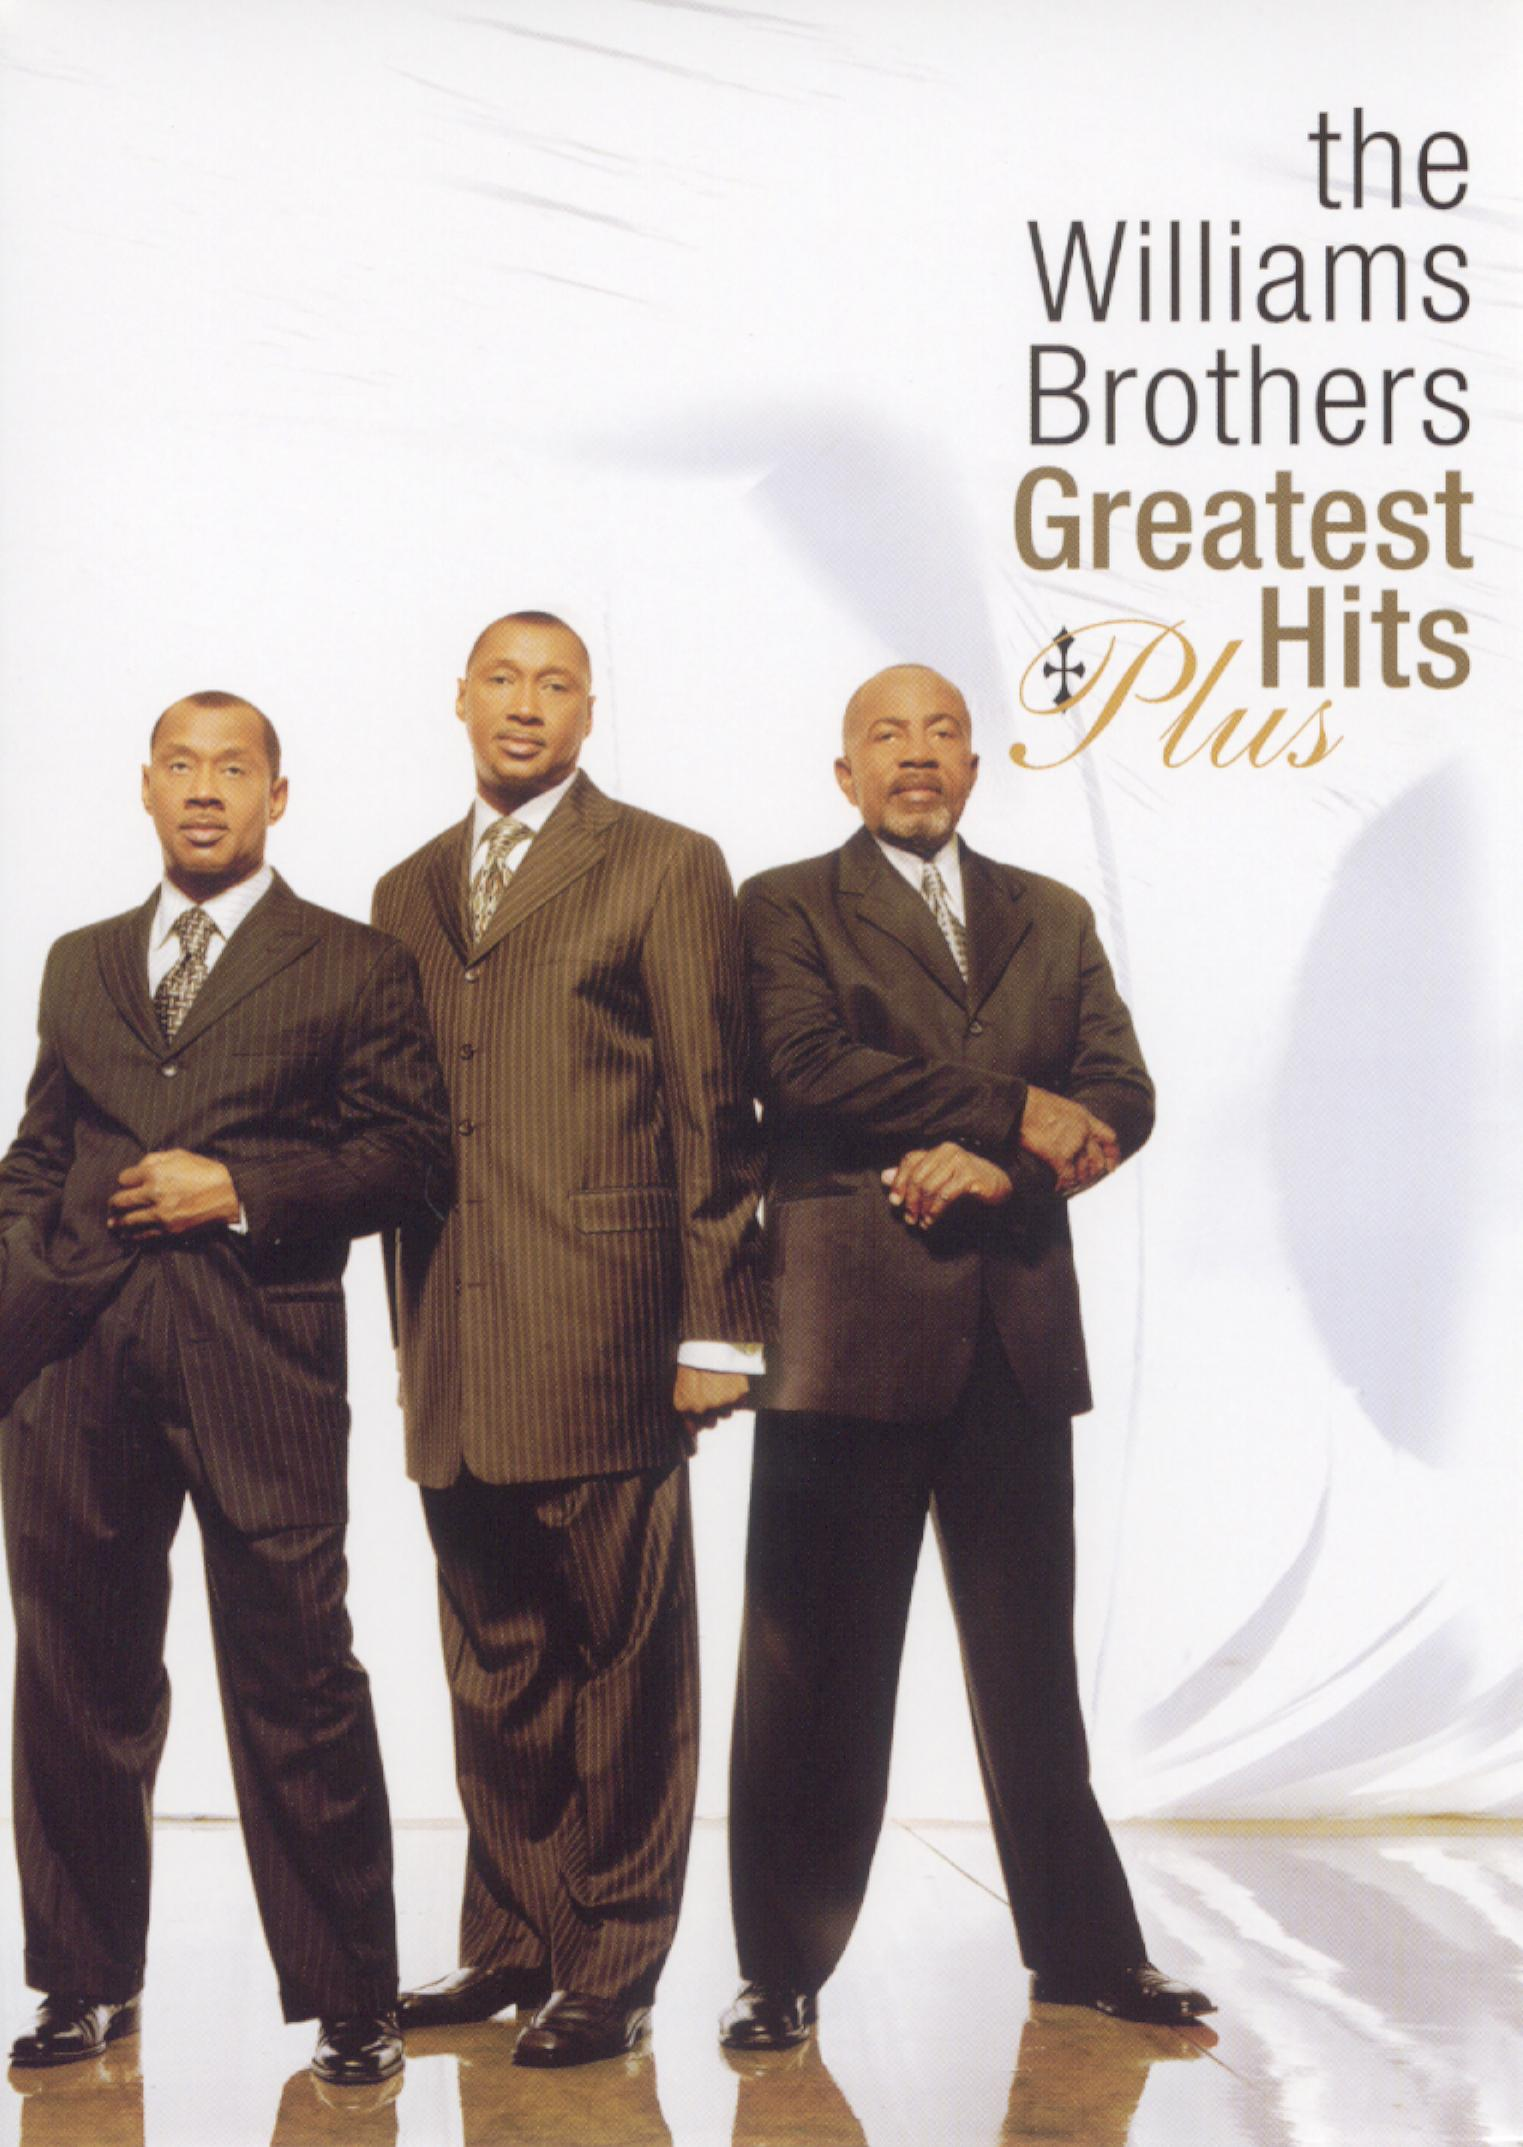 The Williams Brothers: Greatest Hits Plus